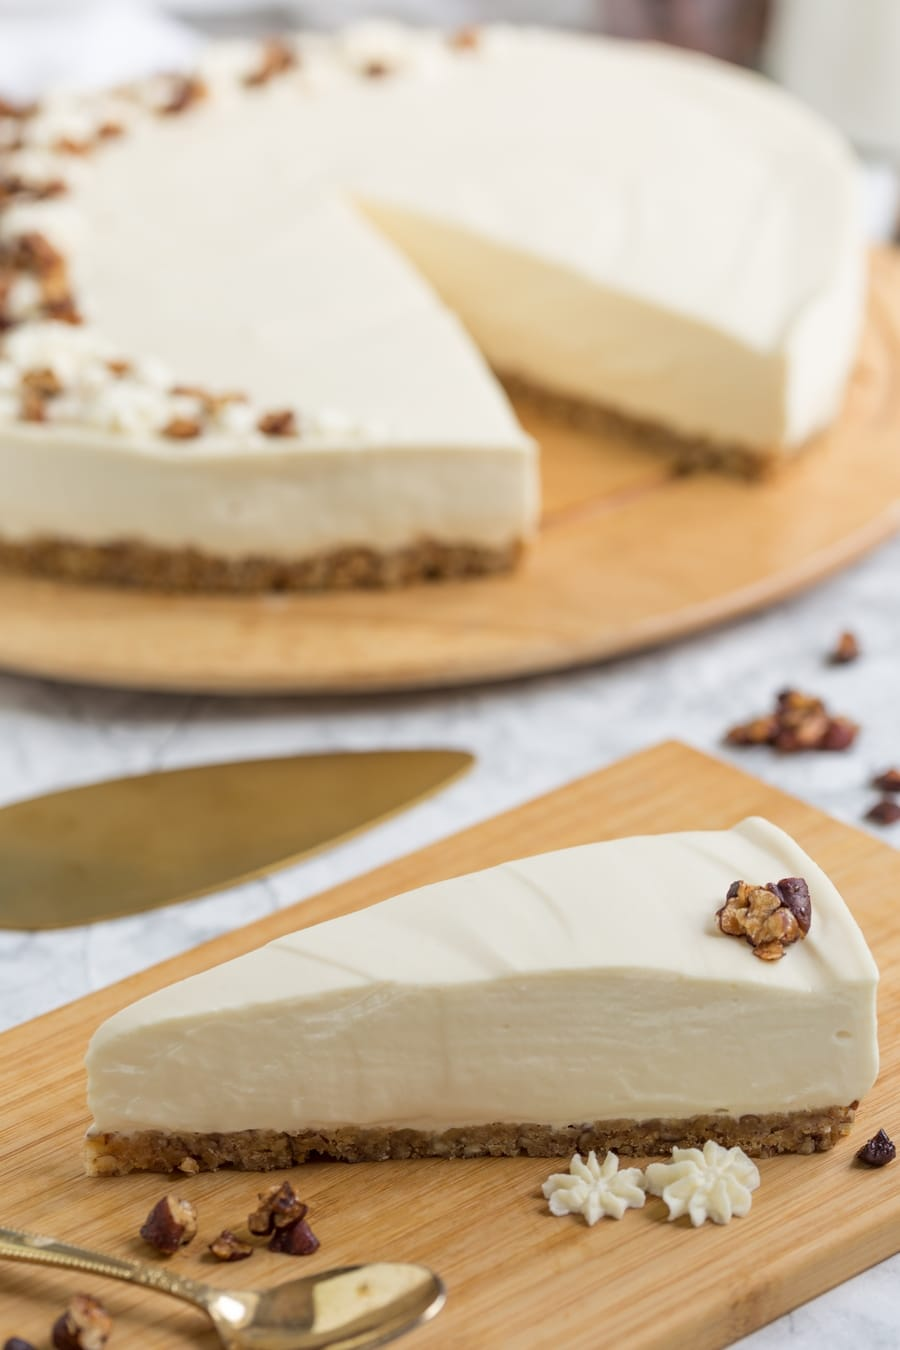 Cheesecake slice with candied pecans.